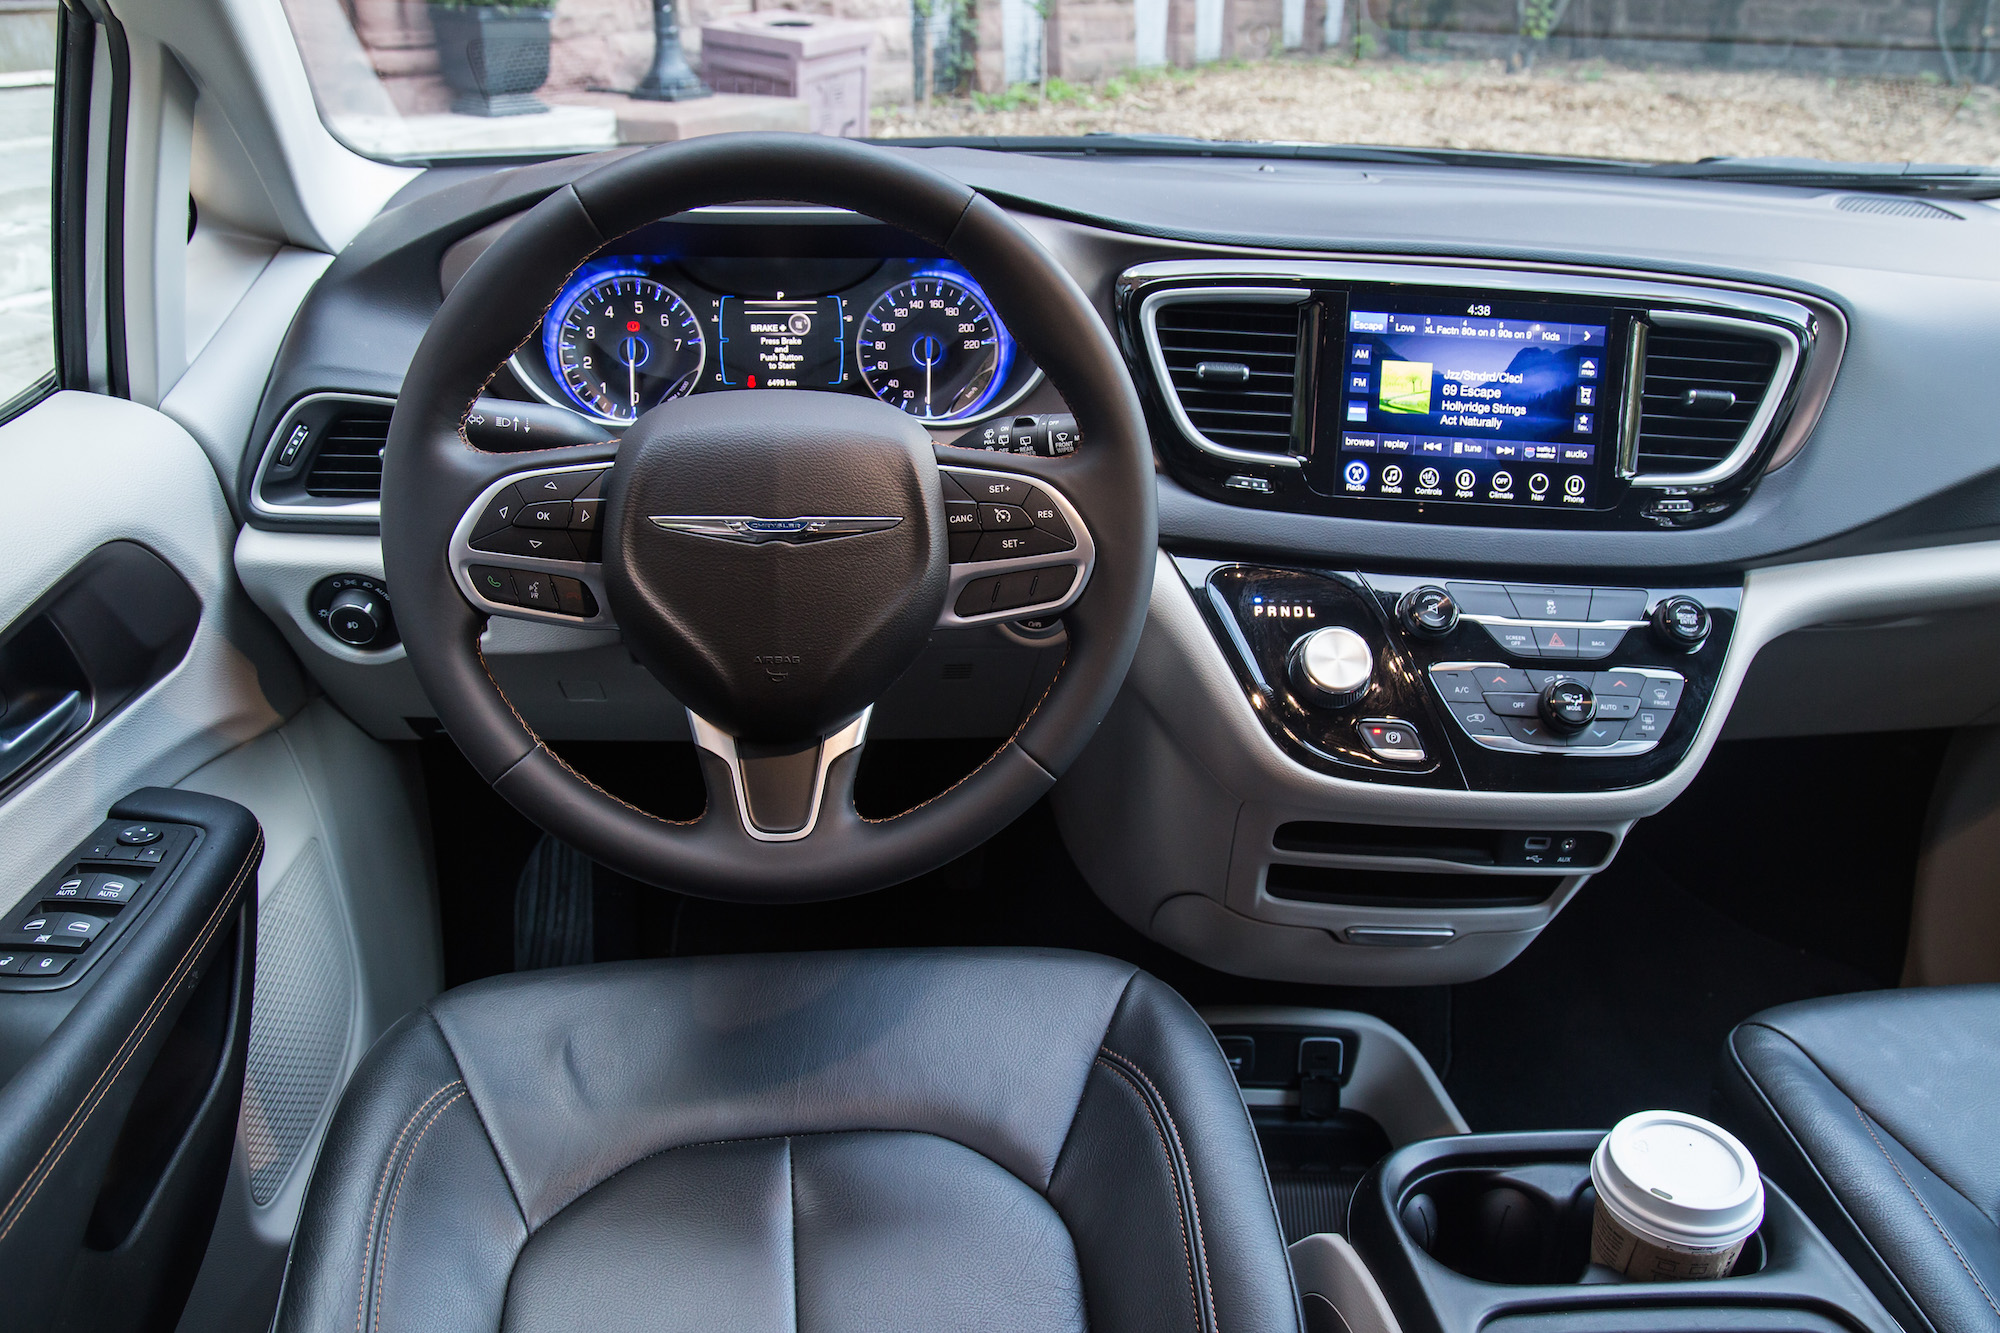 2016 Chrysler Pacifica Interior Pictures To Pin On